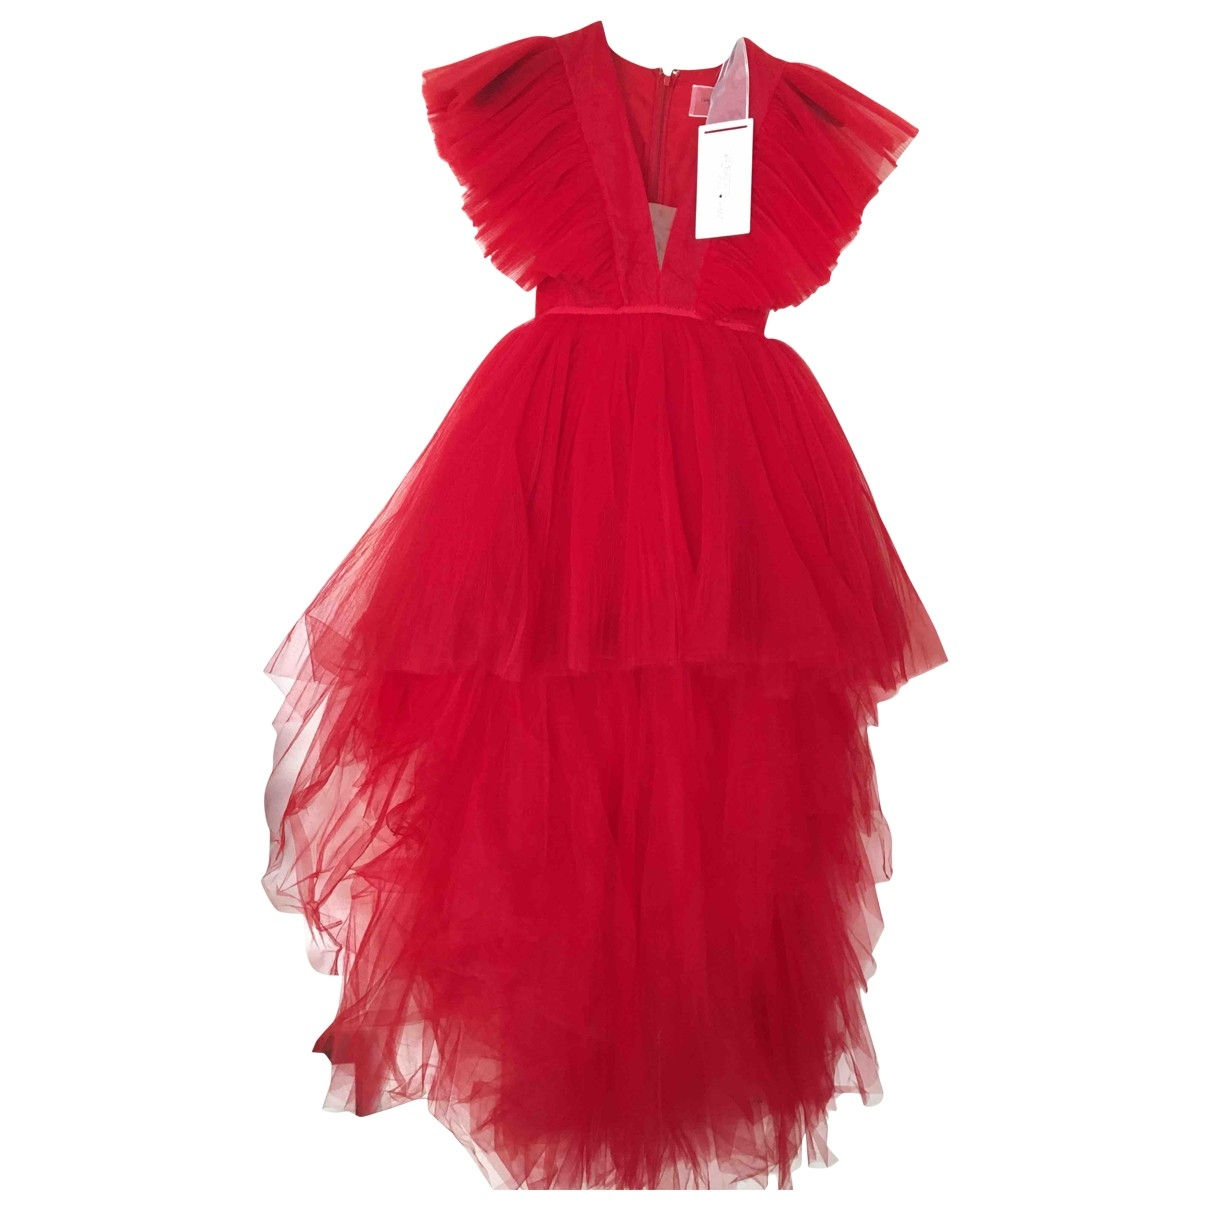 Giambattista Valli X H&m \N Red dress for Women 34 FR